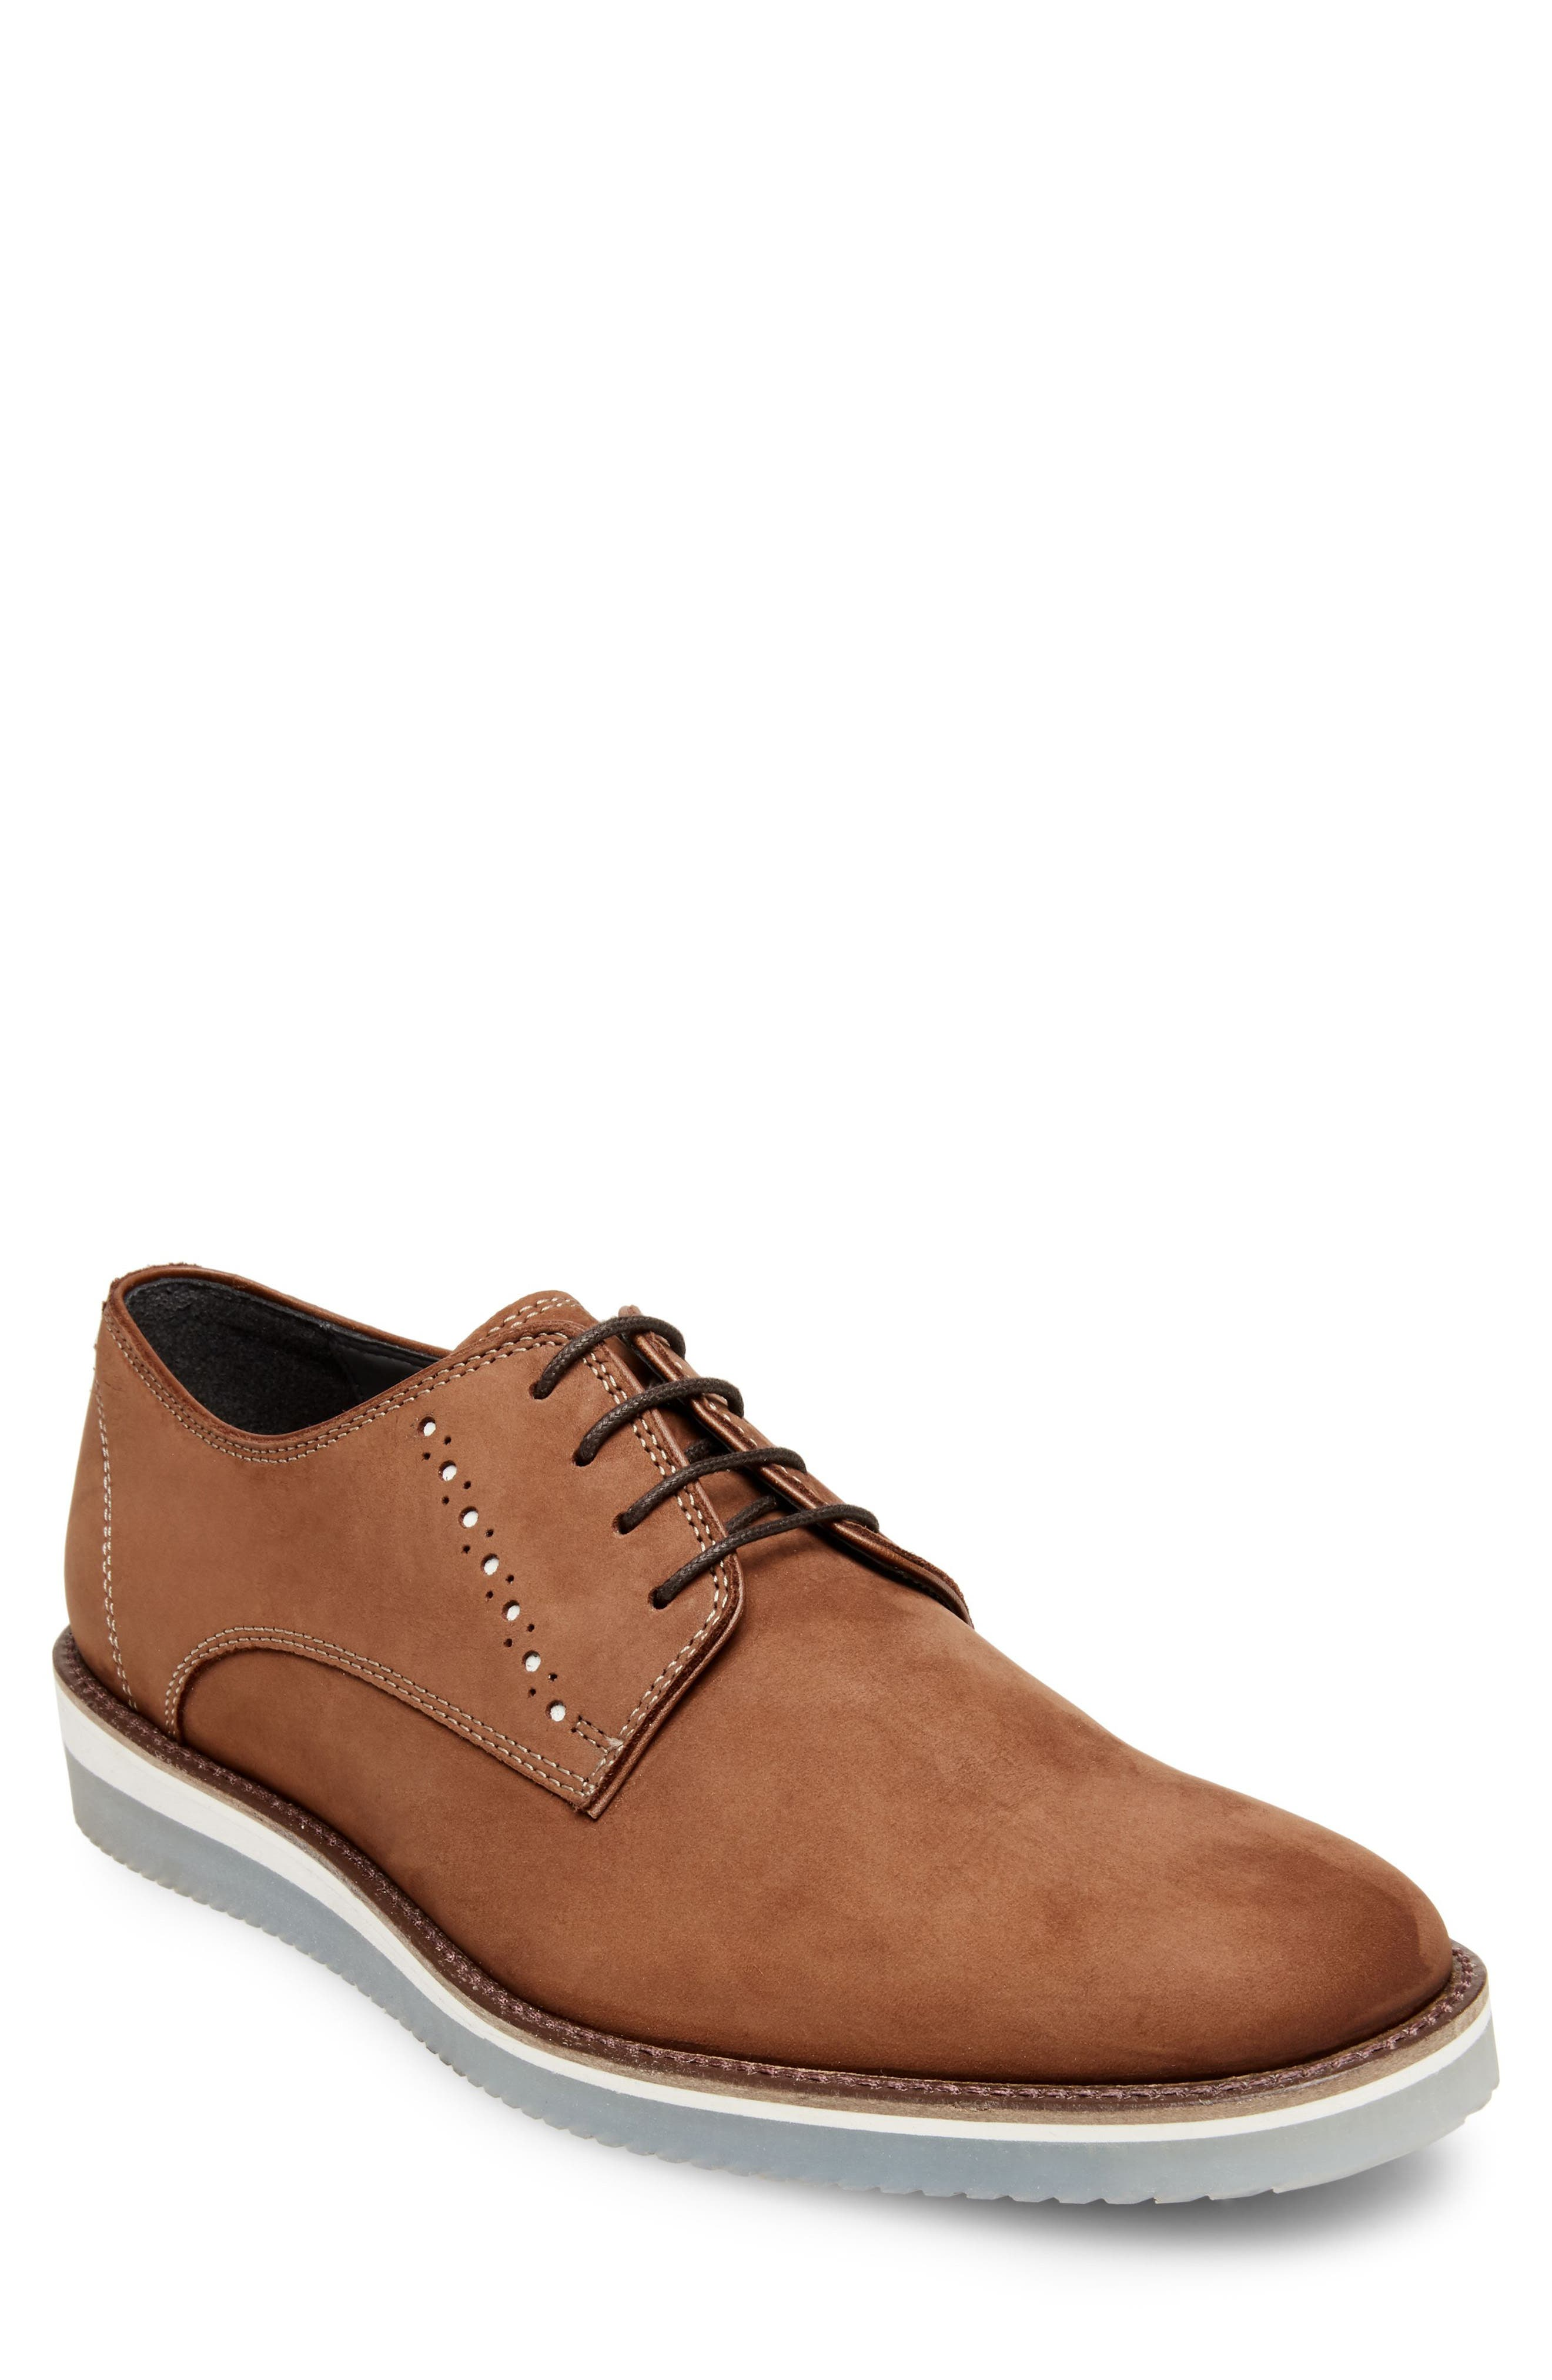 Inquest Plain Toe Derby,                         Main,                         color, Cognac Nubuck